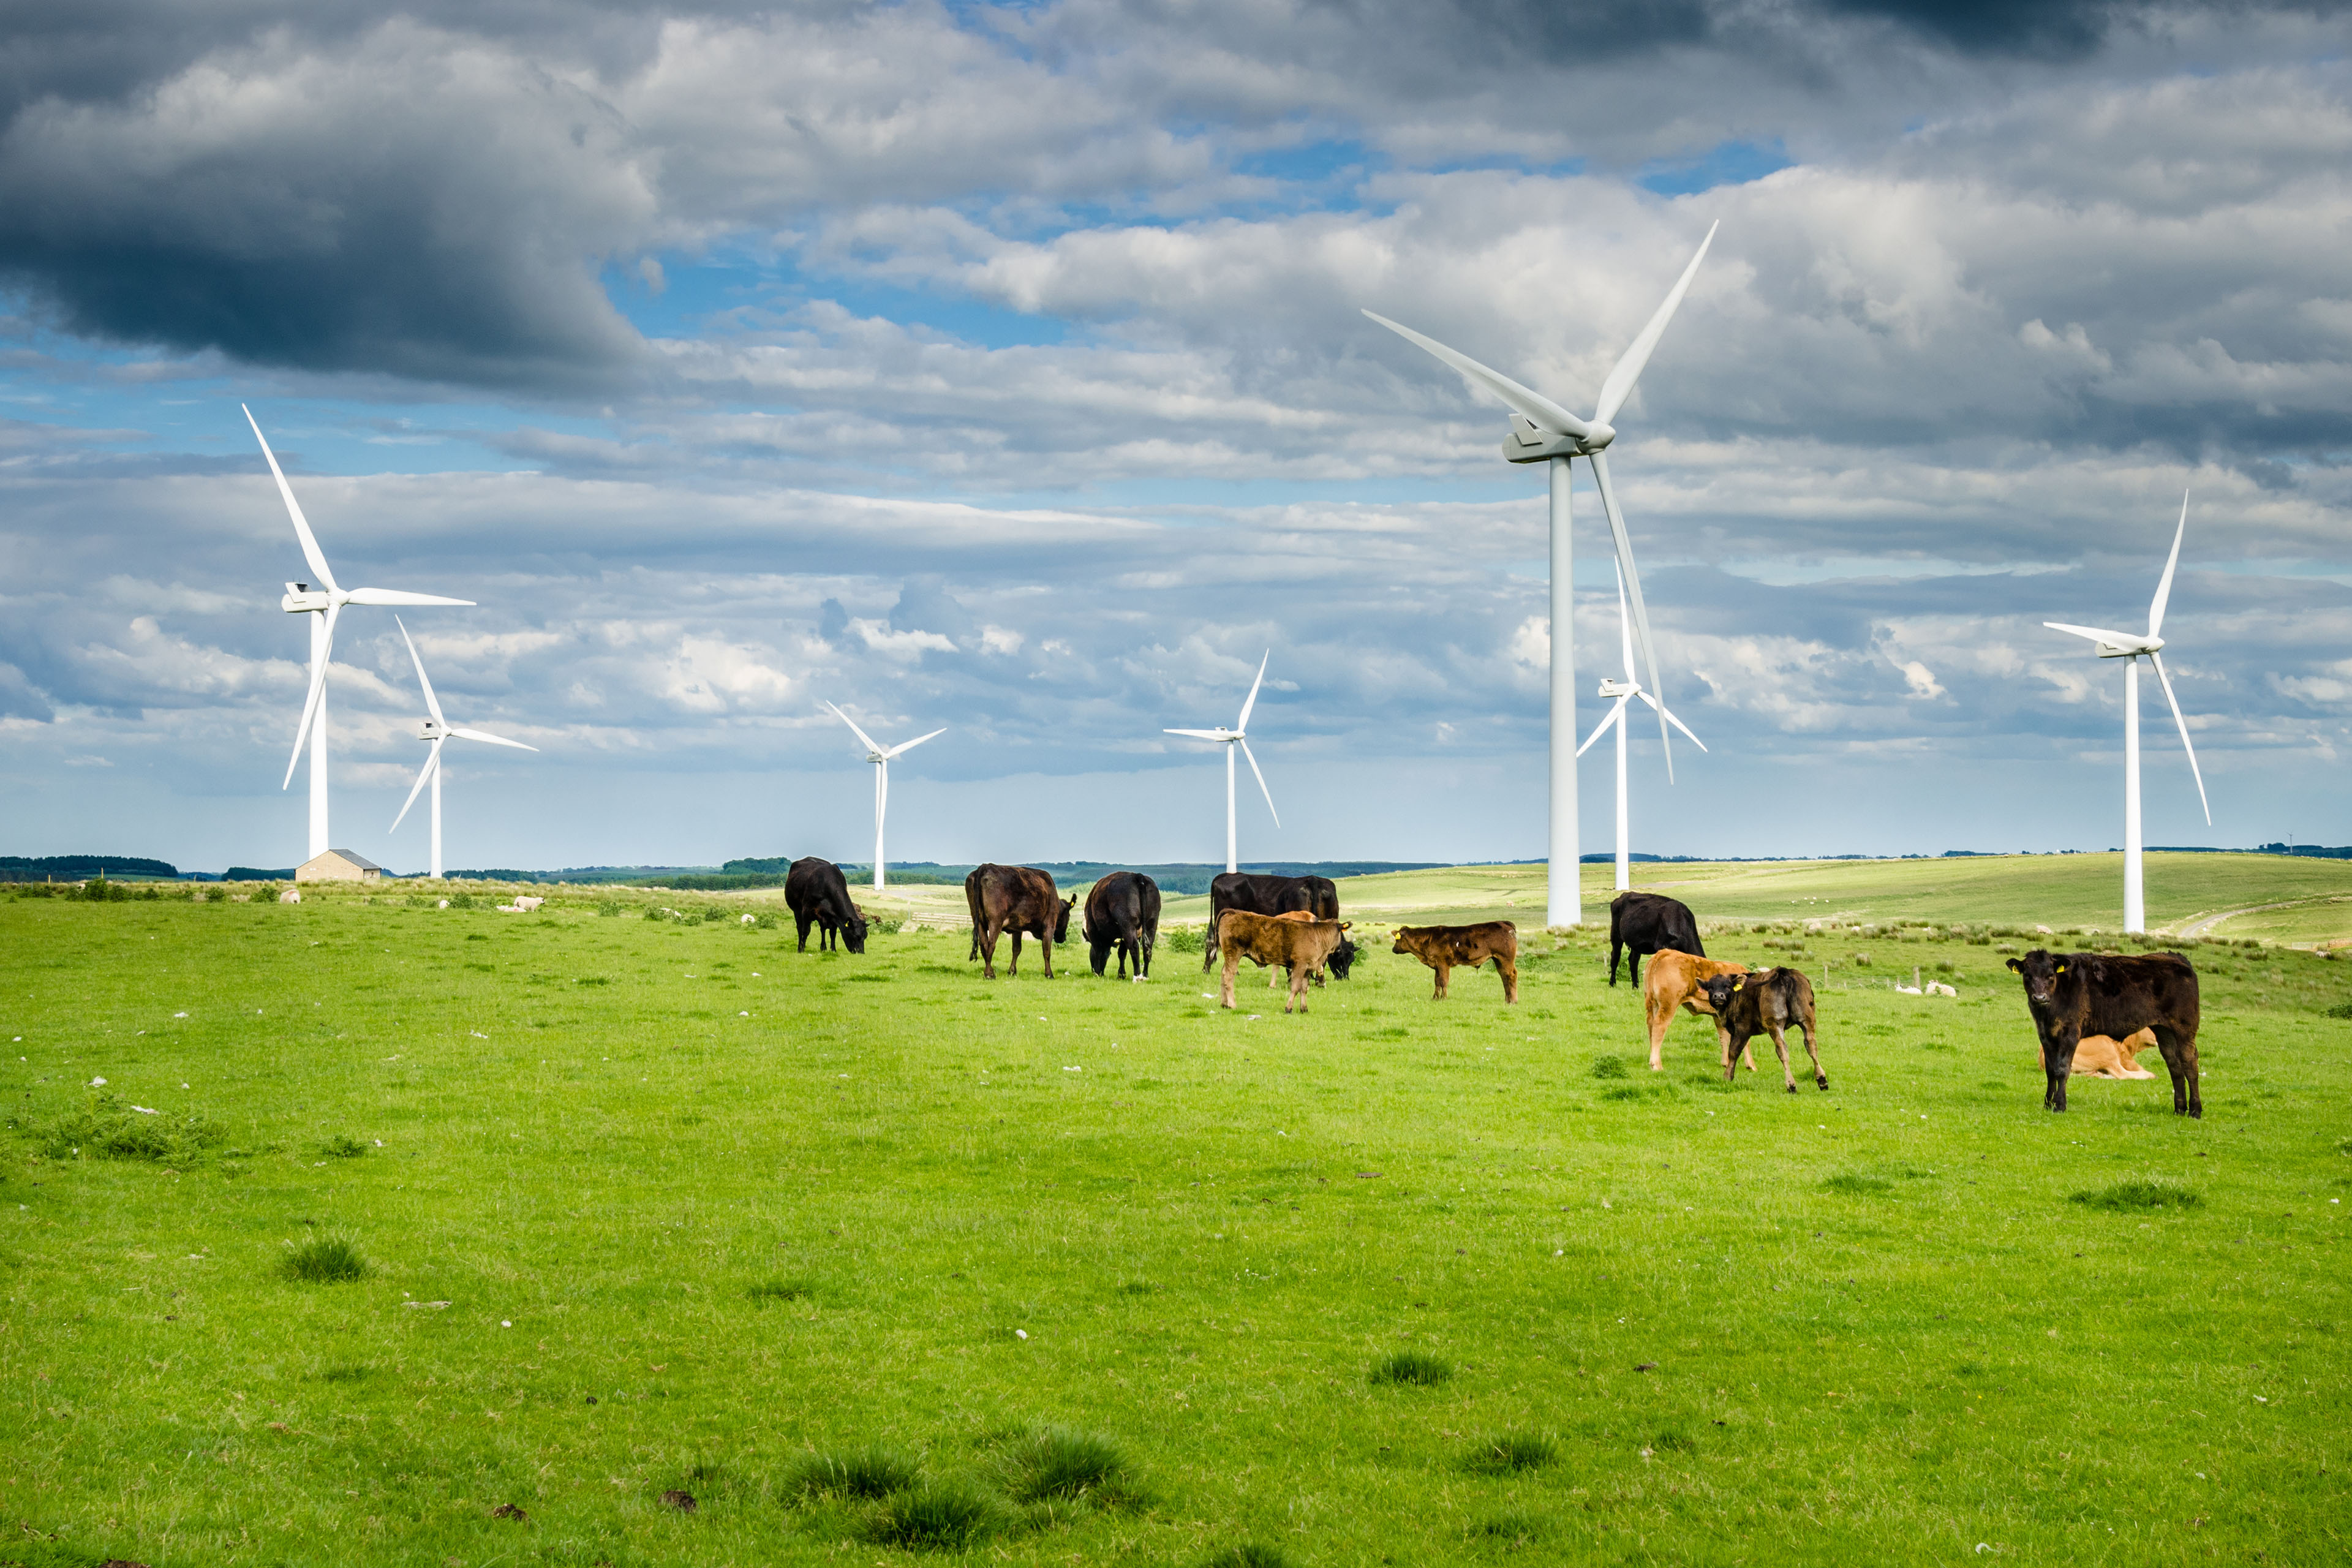 Wind Power Pland in a Grassy Field with Cows Grazing